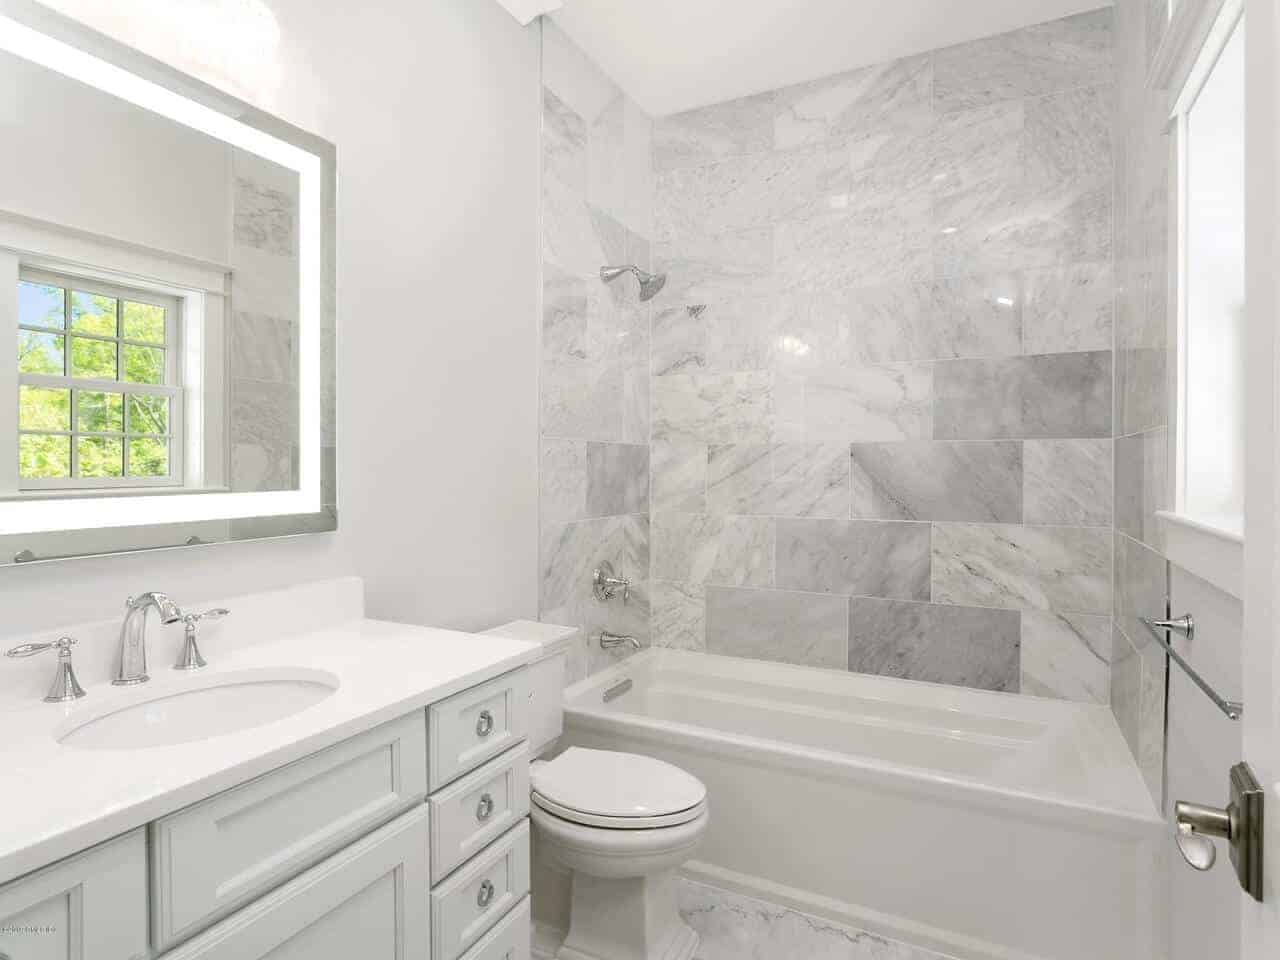 The marble tiles of the shower area walls matches with the flooring. The white toilet is flanked by the bathtub and the white vanity that has a white countertop paired with a vanity mirror with back lights on its frame.